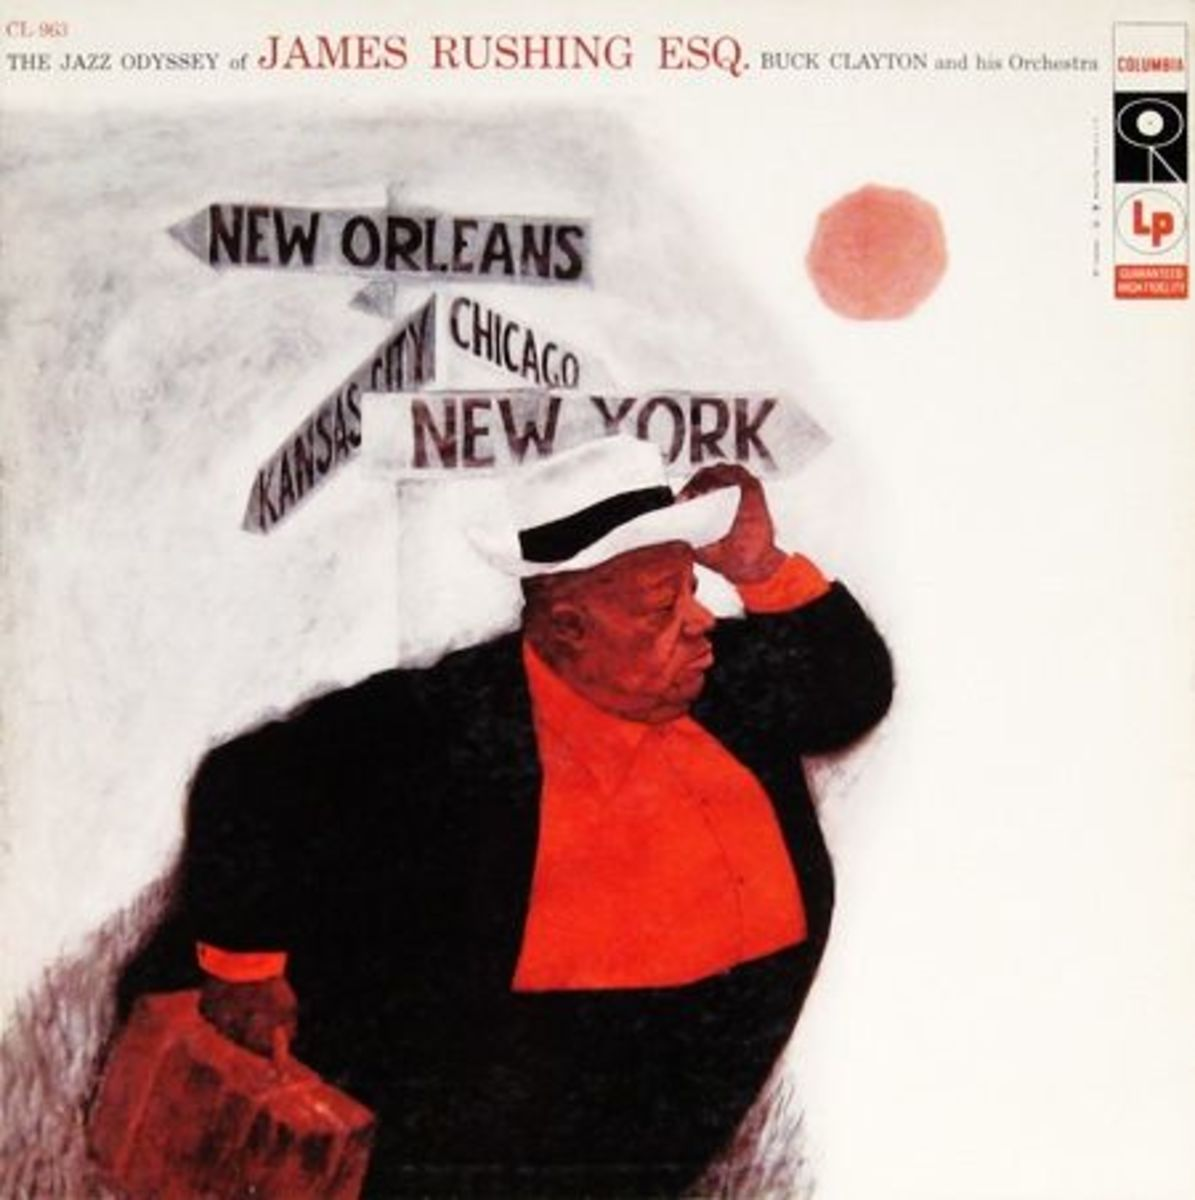 "1956 Jimmy Rushing ""The Jazz Odyssey of James Rushing Esq"" Columbia Records 963 12"" Vinyl Record (1956) Album Cover Art by Tom Allen Design by Neil Fujita"